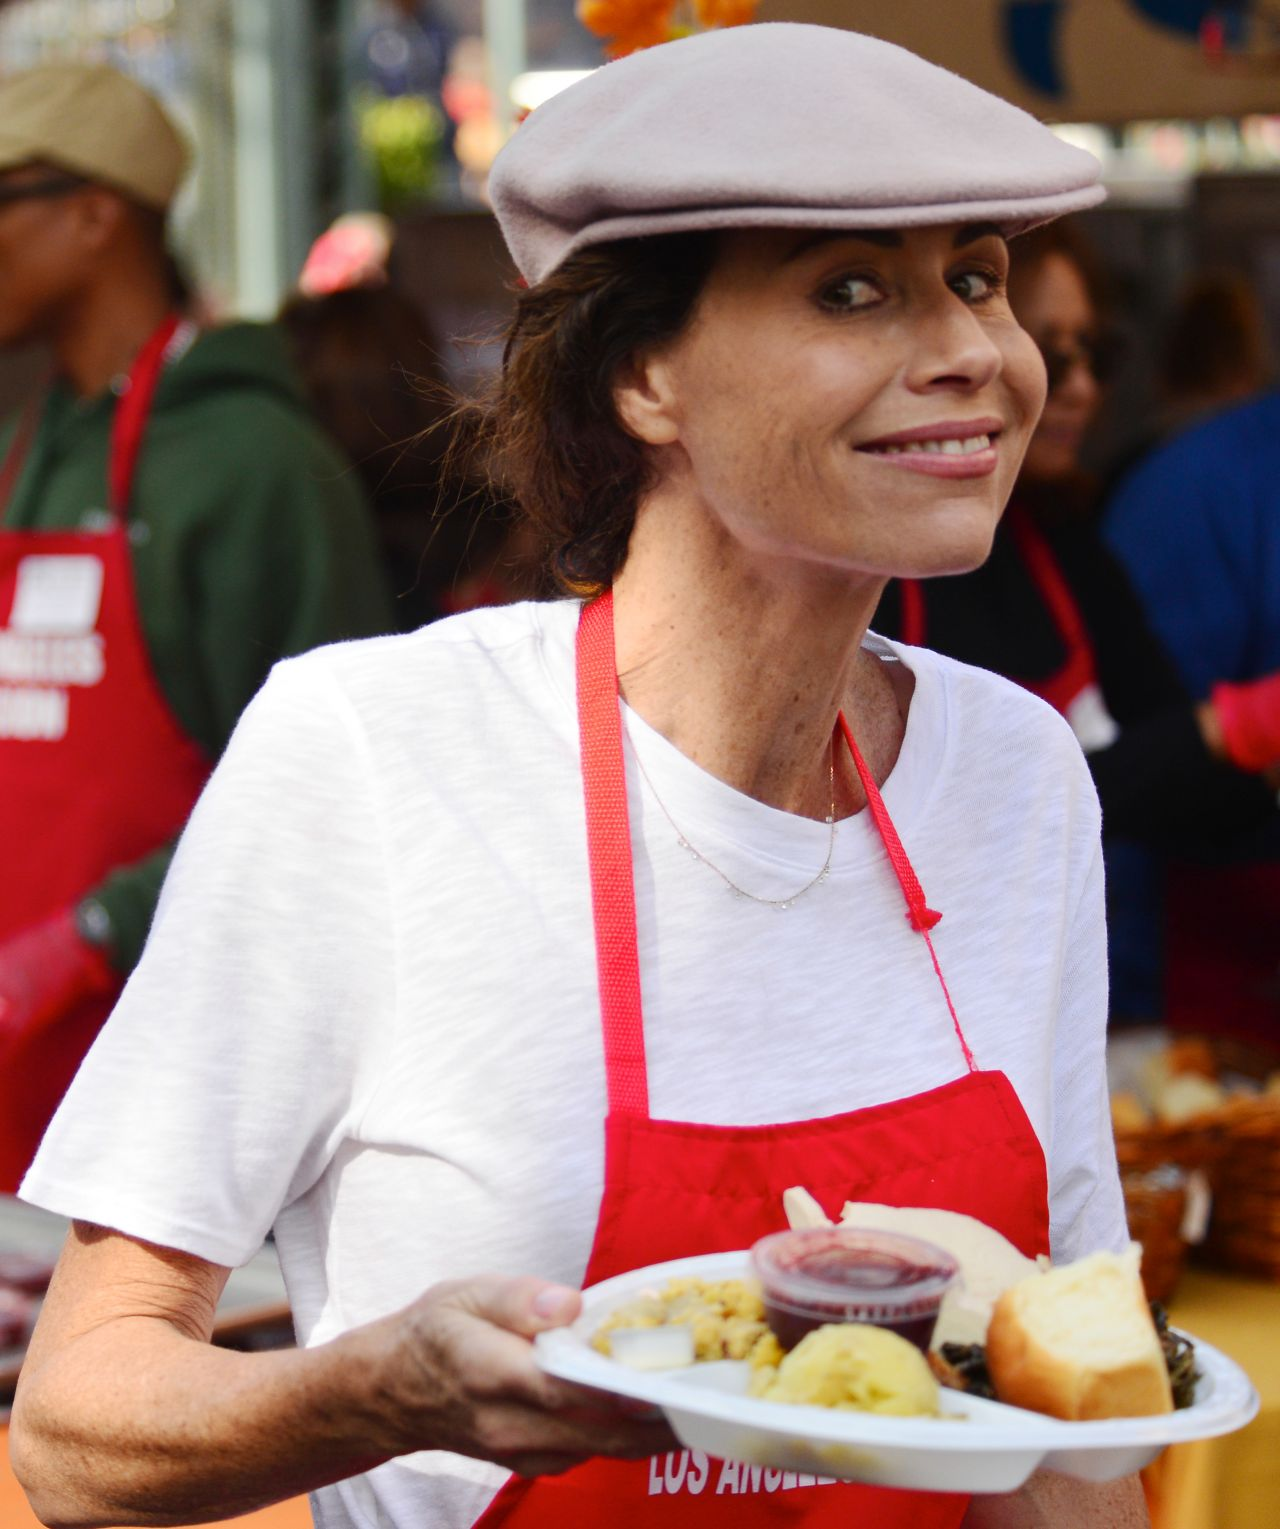 https://celebmafia.com/wp-content/uploads/2018/11/minnie-driver-los-angeles-mission-hosts-thanksgiving-event-for-the-homeless-11-21-2018-1.jpg